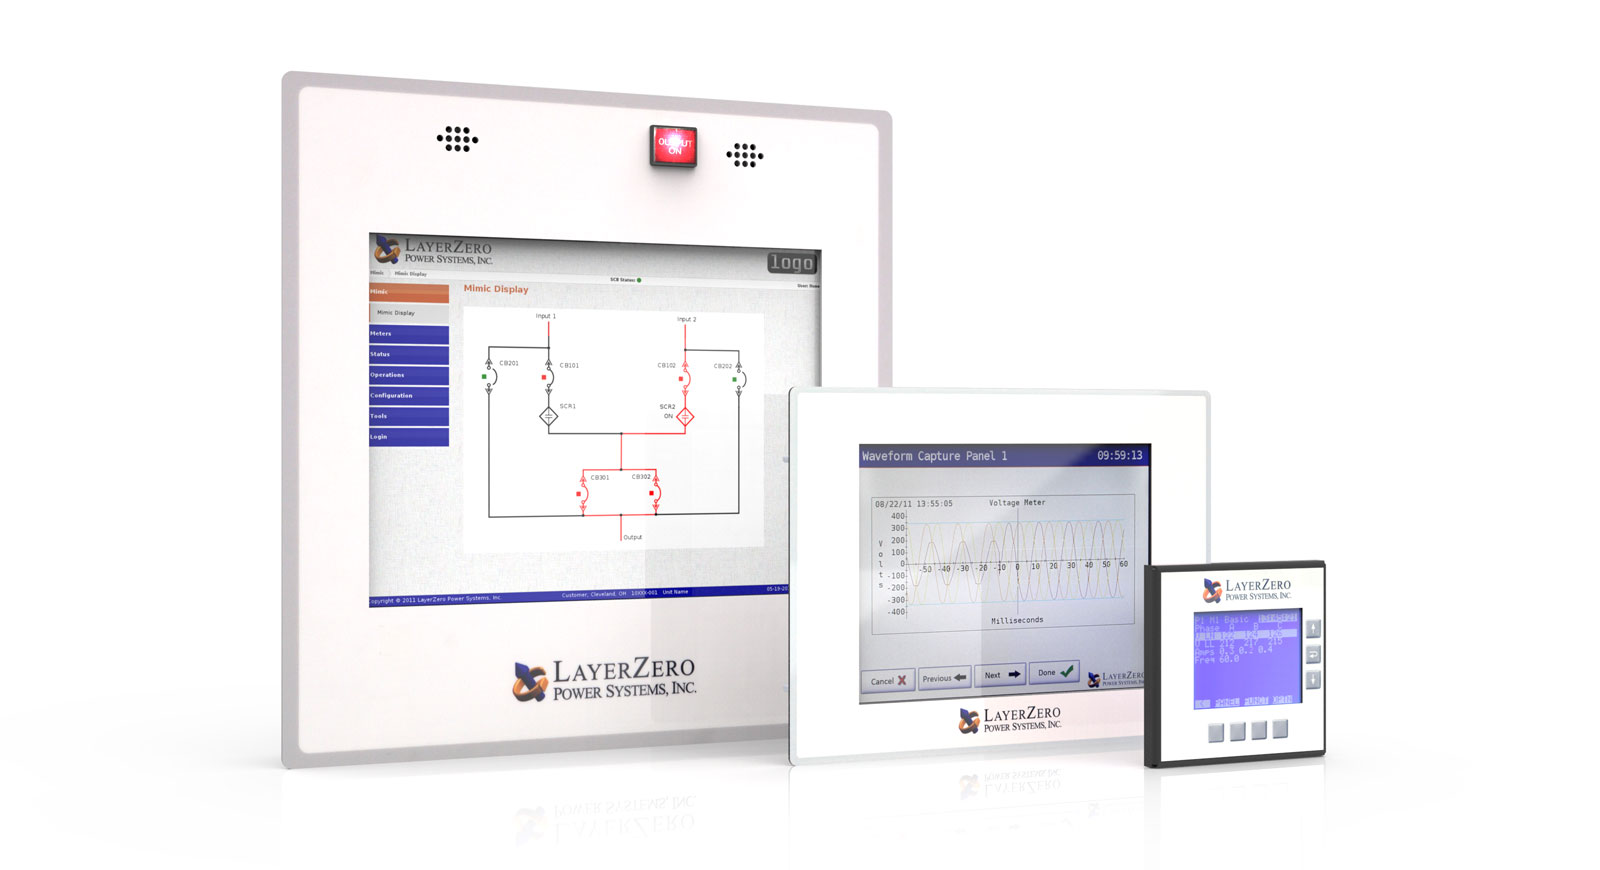 LayerZero Touch Screen Display